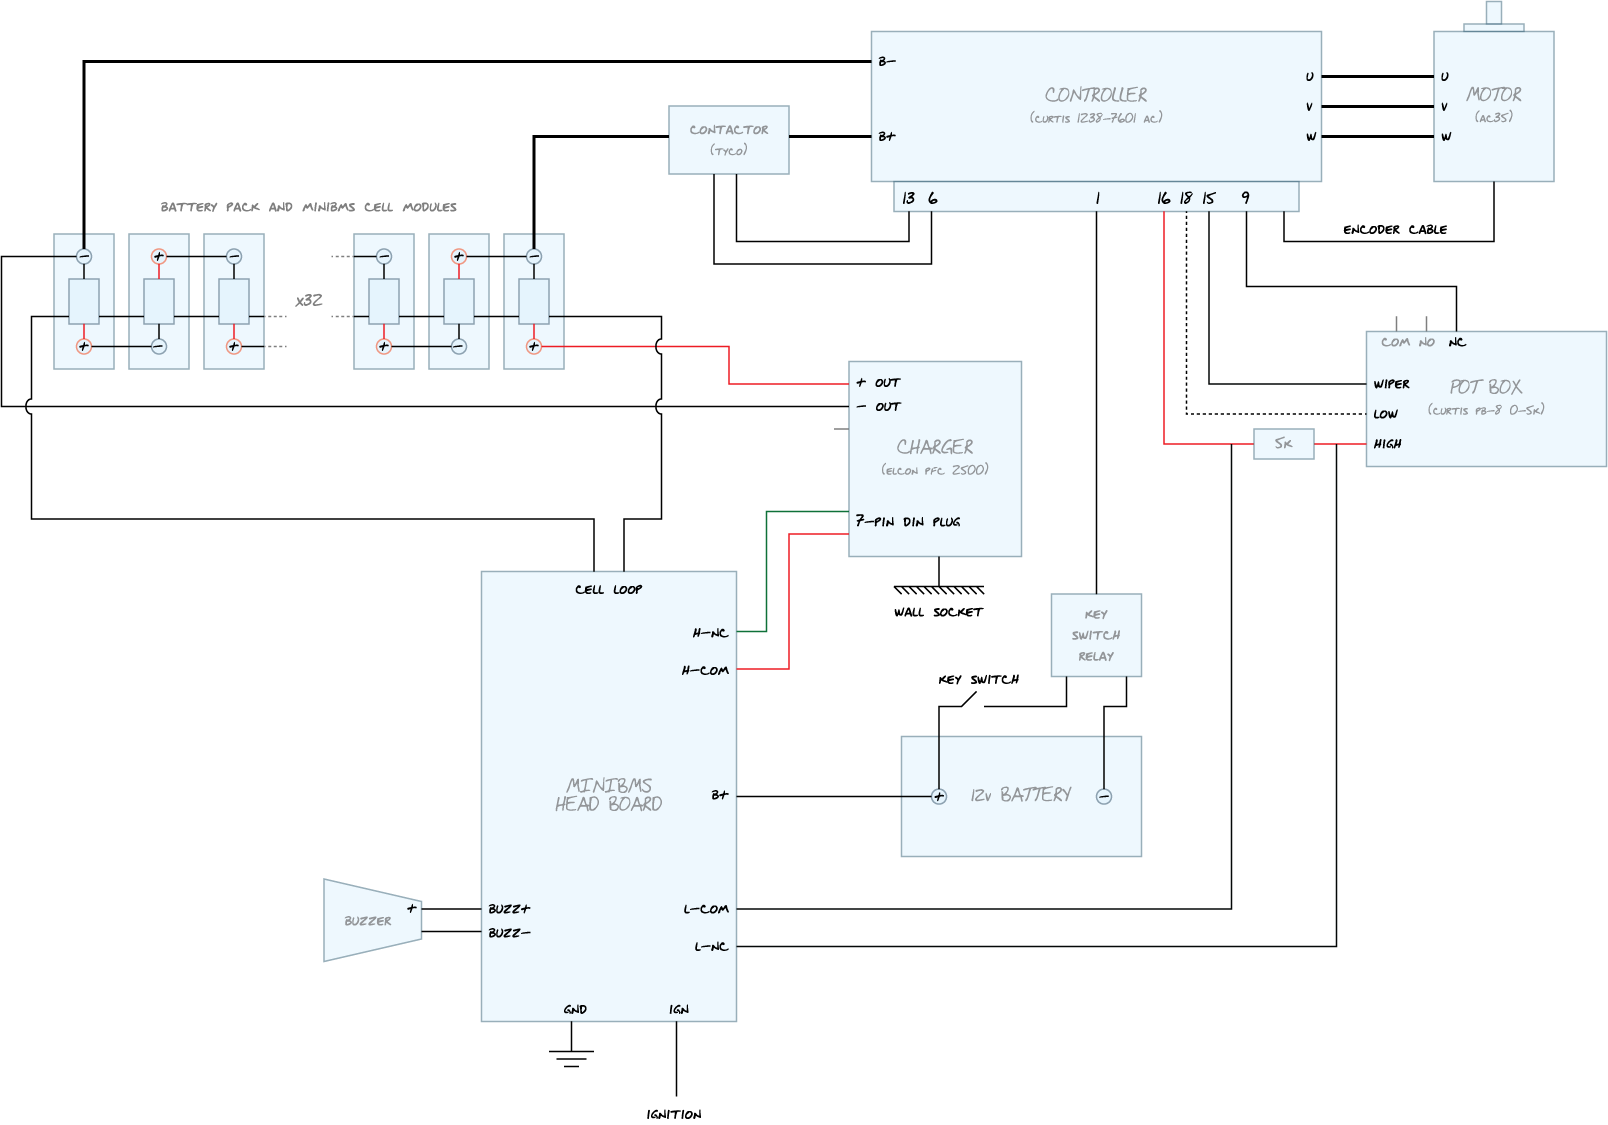 Wiring Diagram Check Diy Electric Car Forums Din Plug Click On The Image For A Full Size Version